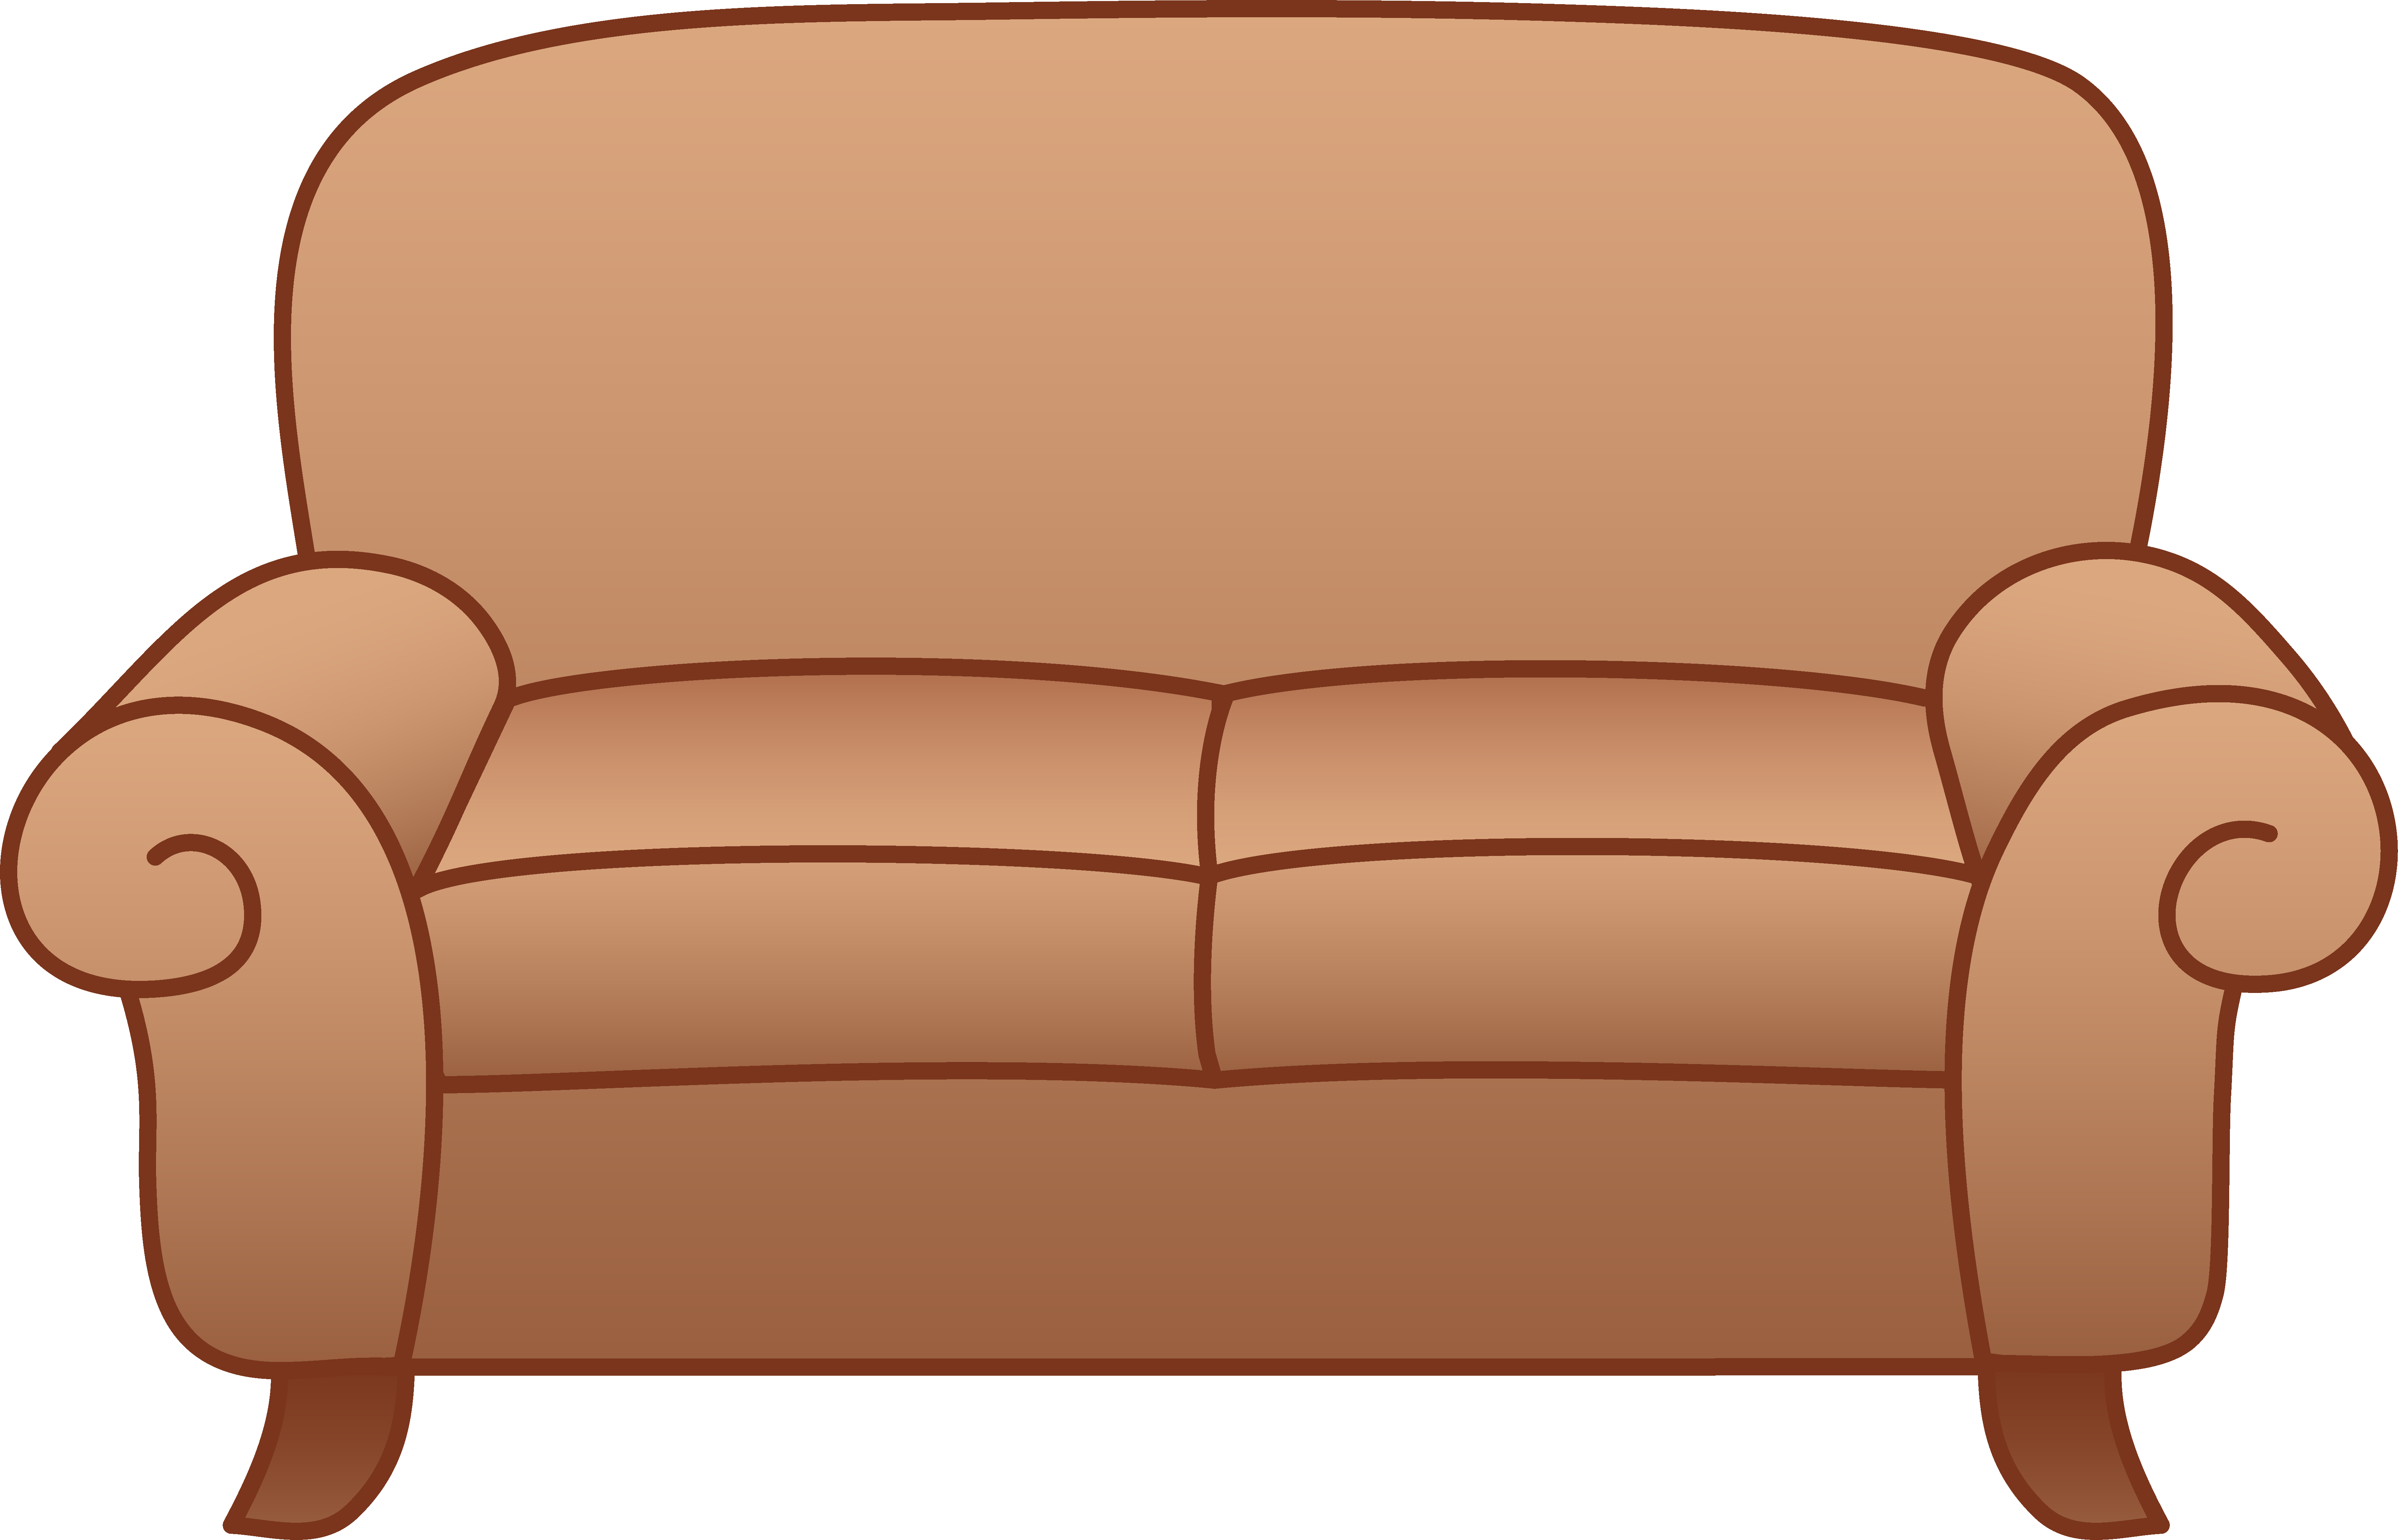 Cartoon Couch Drawing At Getdrawings Com Free For